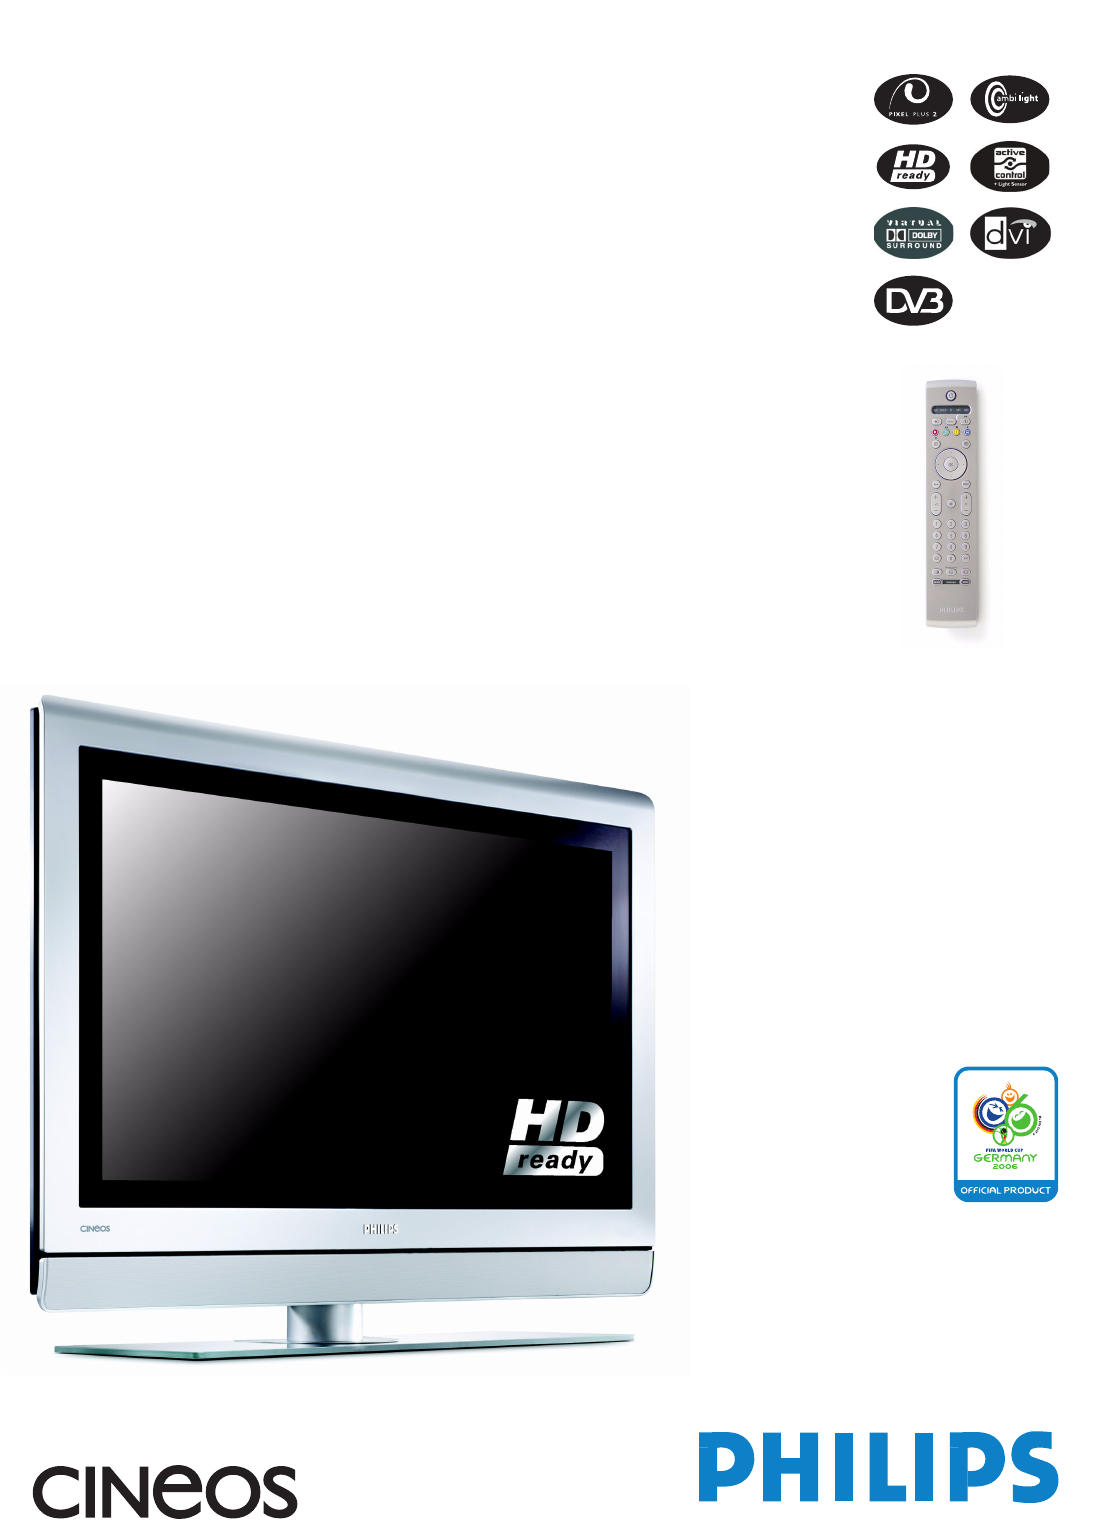 philips flat panel television 42pf9967d user guide manualsonline com rh tv manualsonline com Philips TV User Manual Philips DVD Player Manual